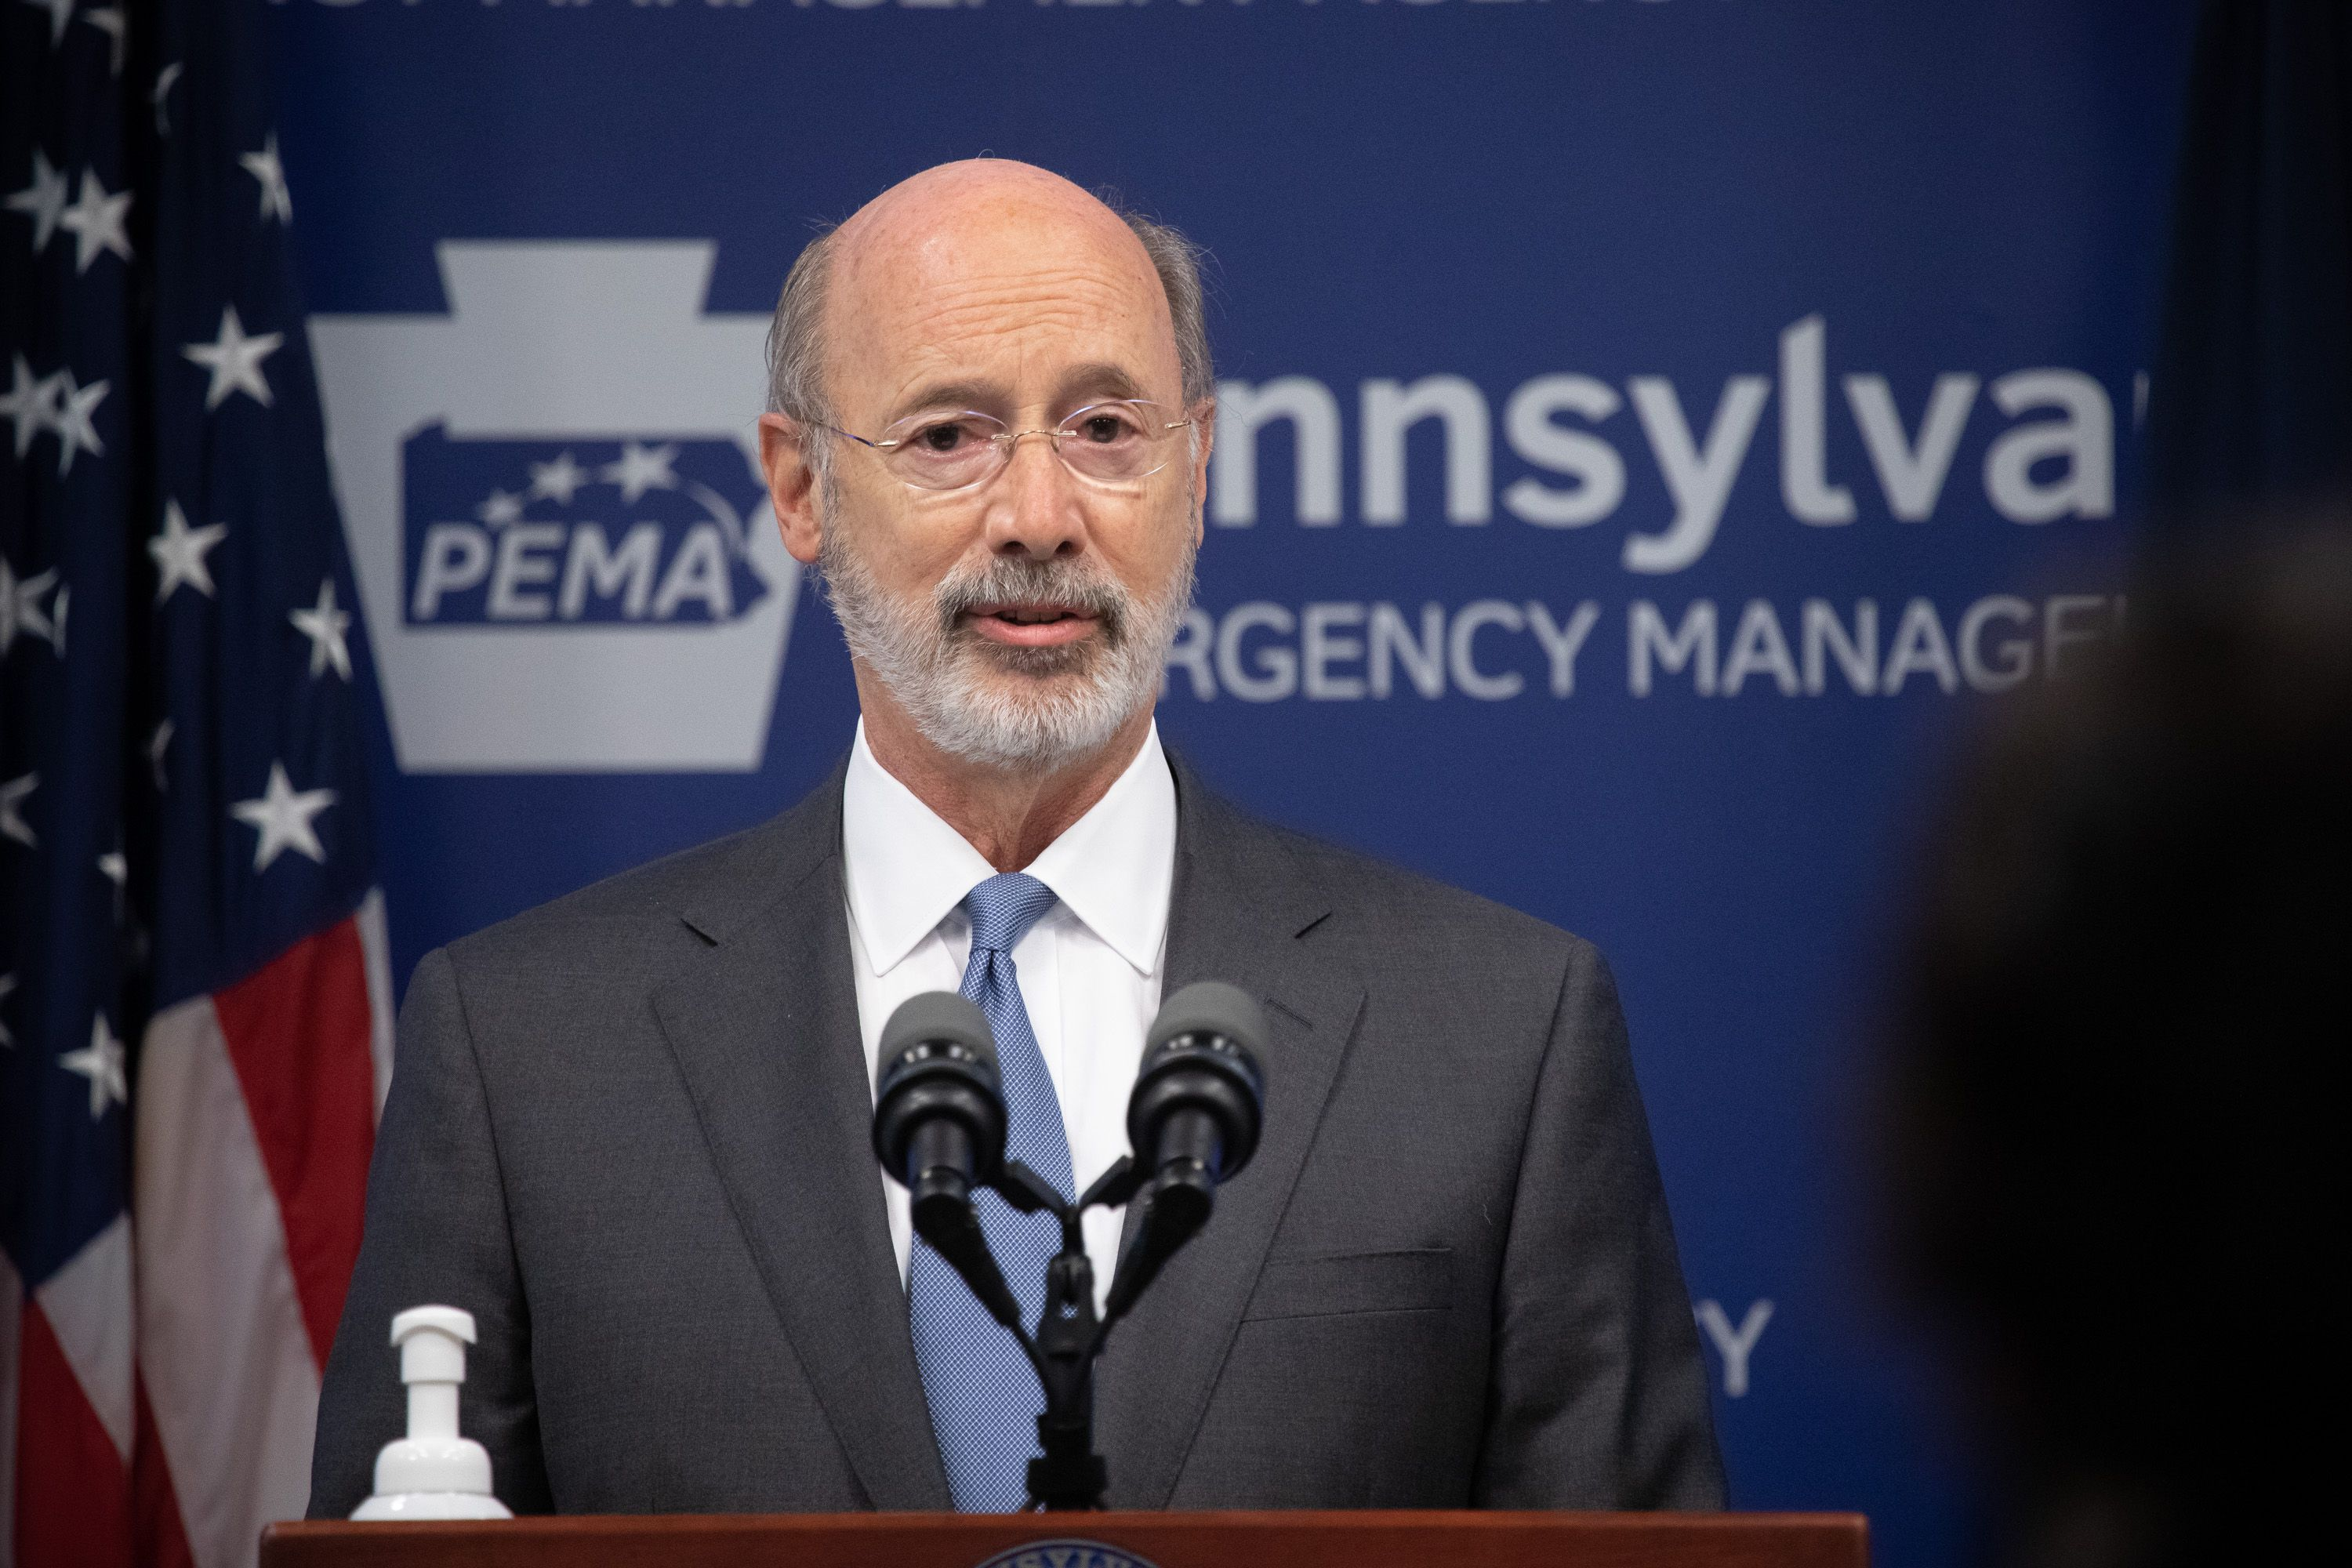 [Column] Gov. Tom Wolf has failed Lebanon County